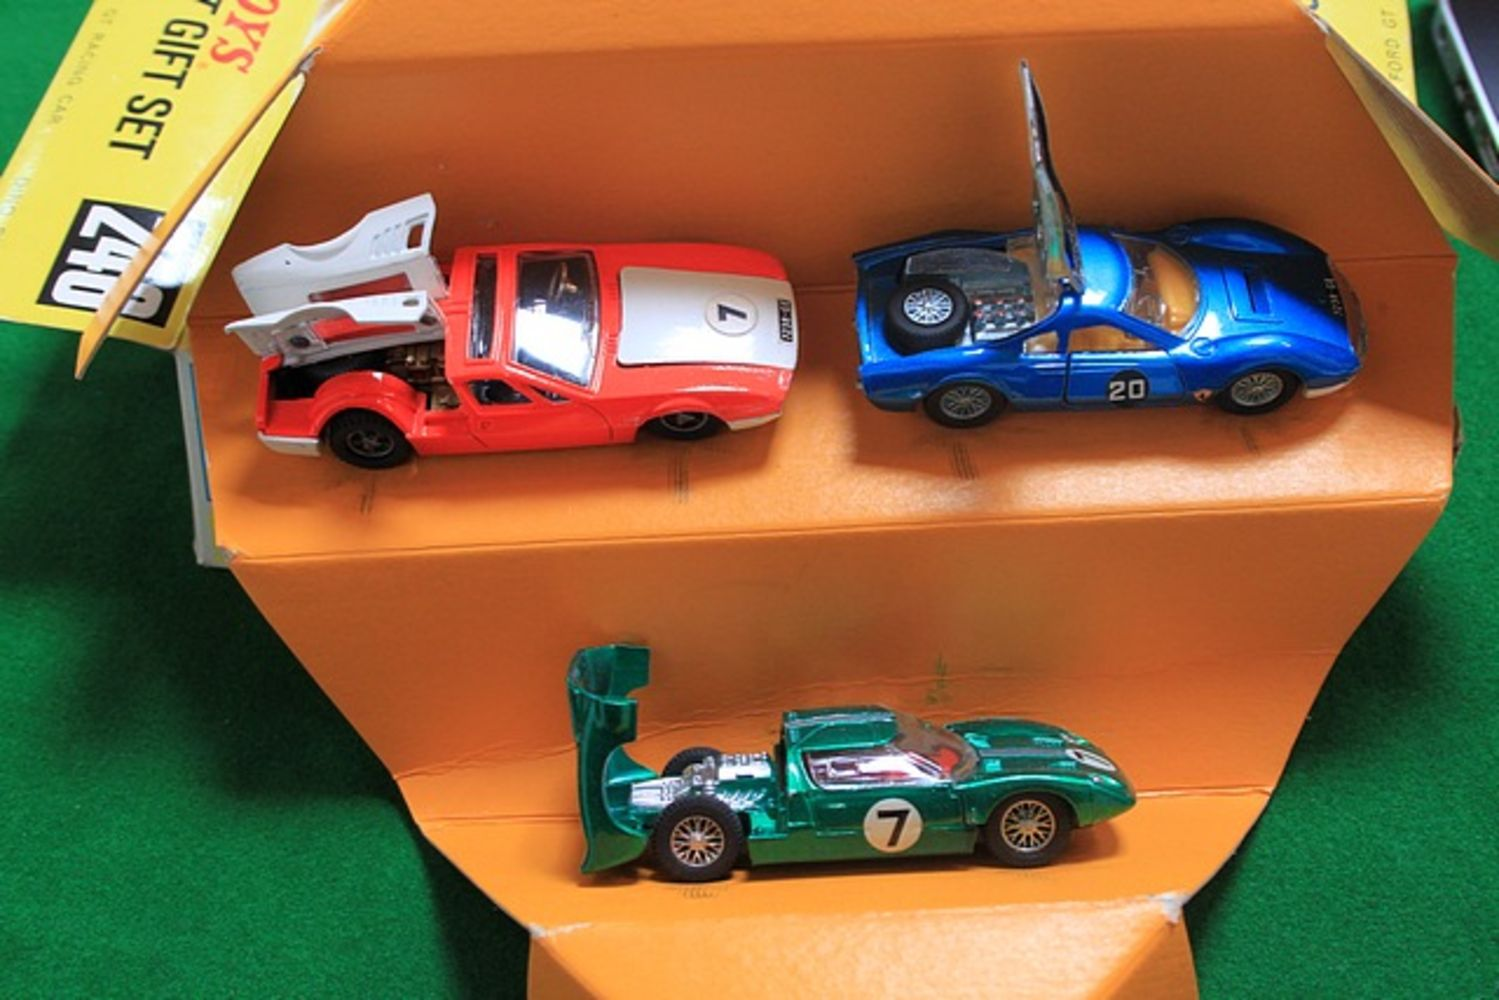 Vintage Toy Auction A Curated Collection From A Single User Over The Past 50 Years – Comprises Diecast, Corgi, Dinky, Soft Toys, Vintage Toys An